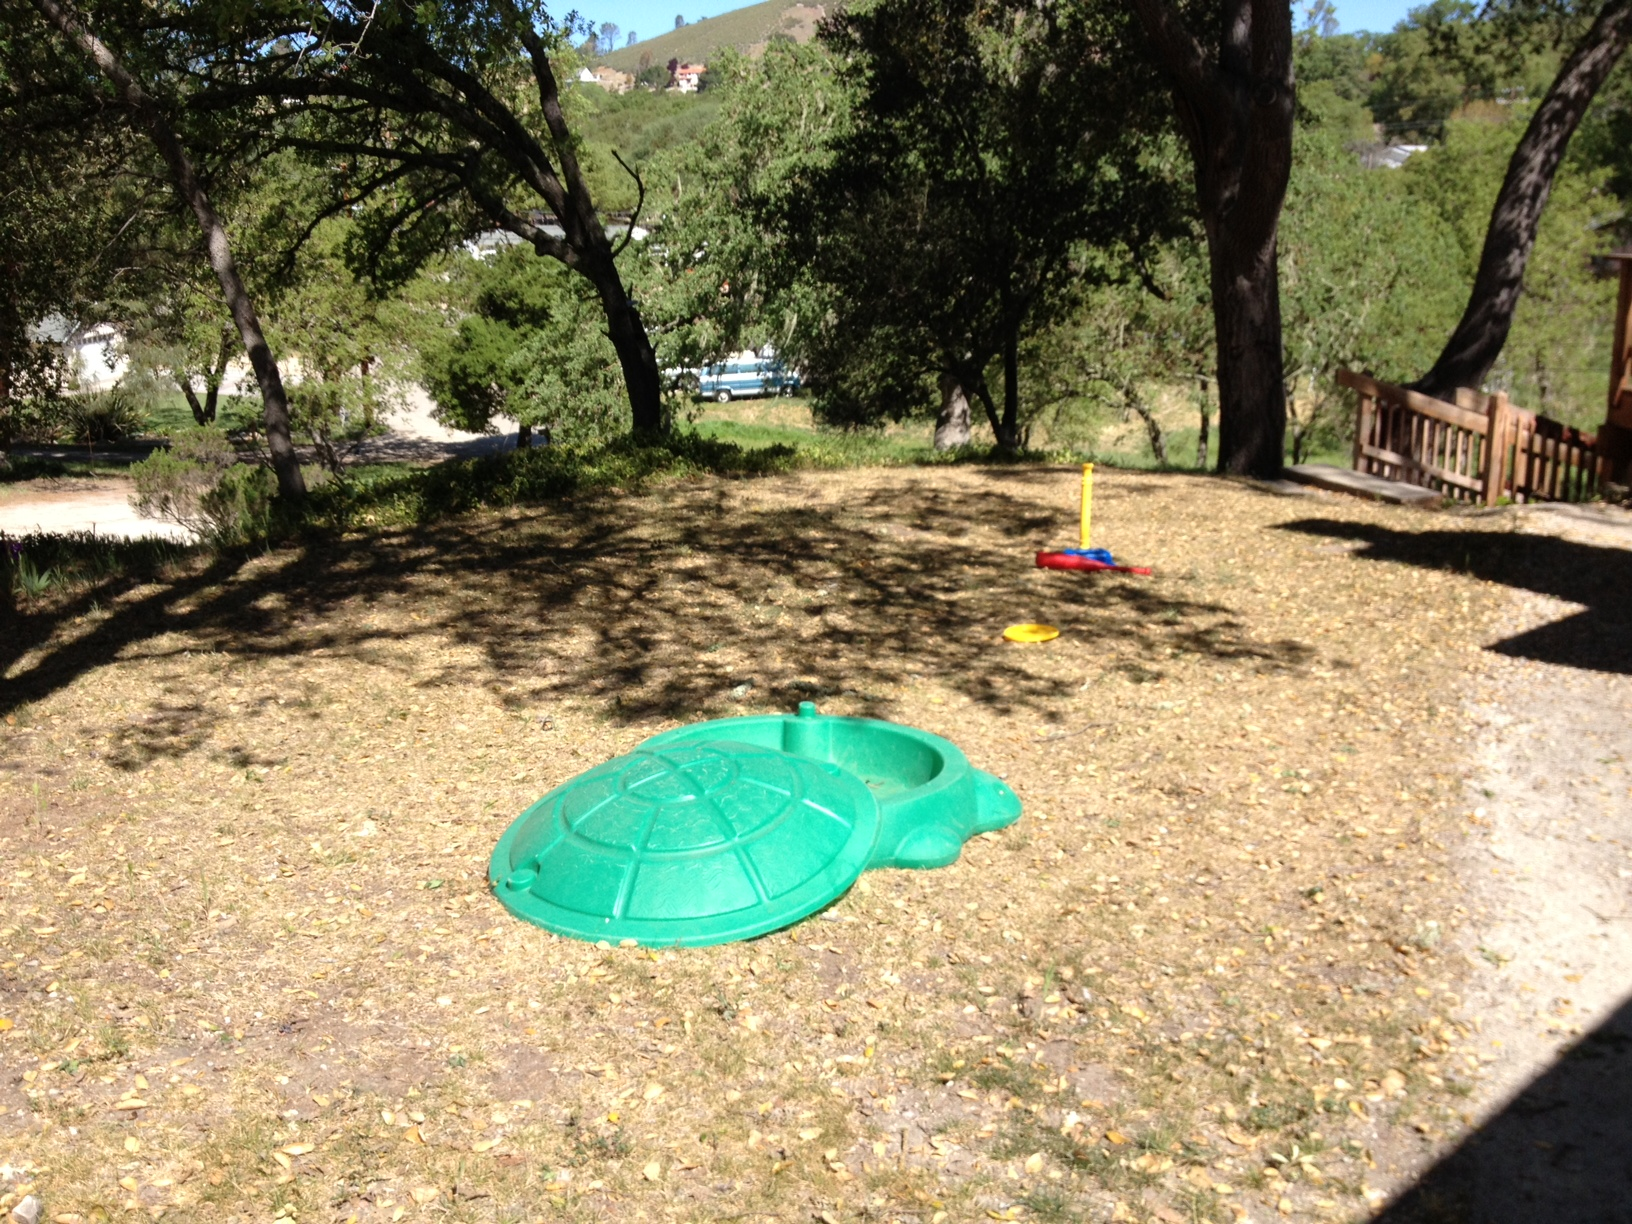 This is the right side of our house as you face it from the front. Eventually this will be the boys' play area, with a picket fence around the perimeter. We have Gregory's (empty) sandbox and his baseball tee so far. Should we add a playground? A water activity table? This area is too shaded to support much of a lawn, so that's out